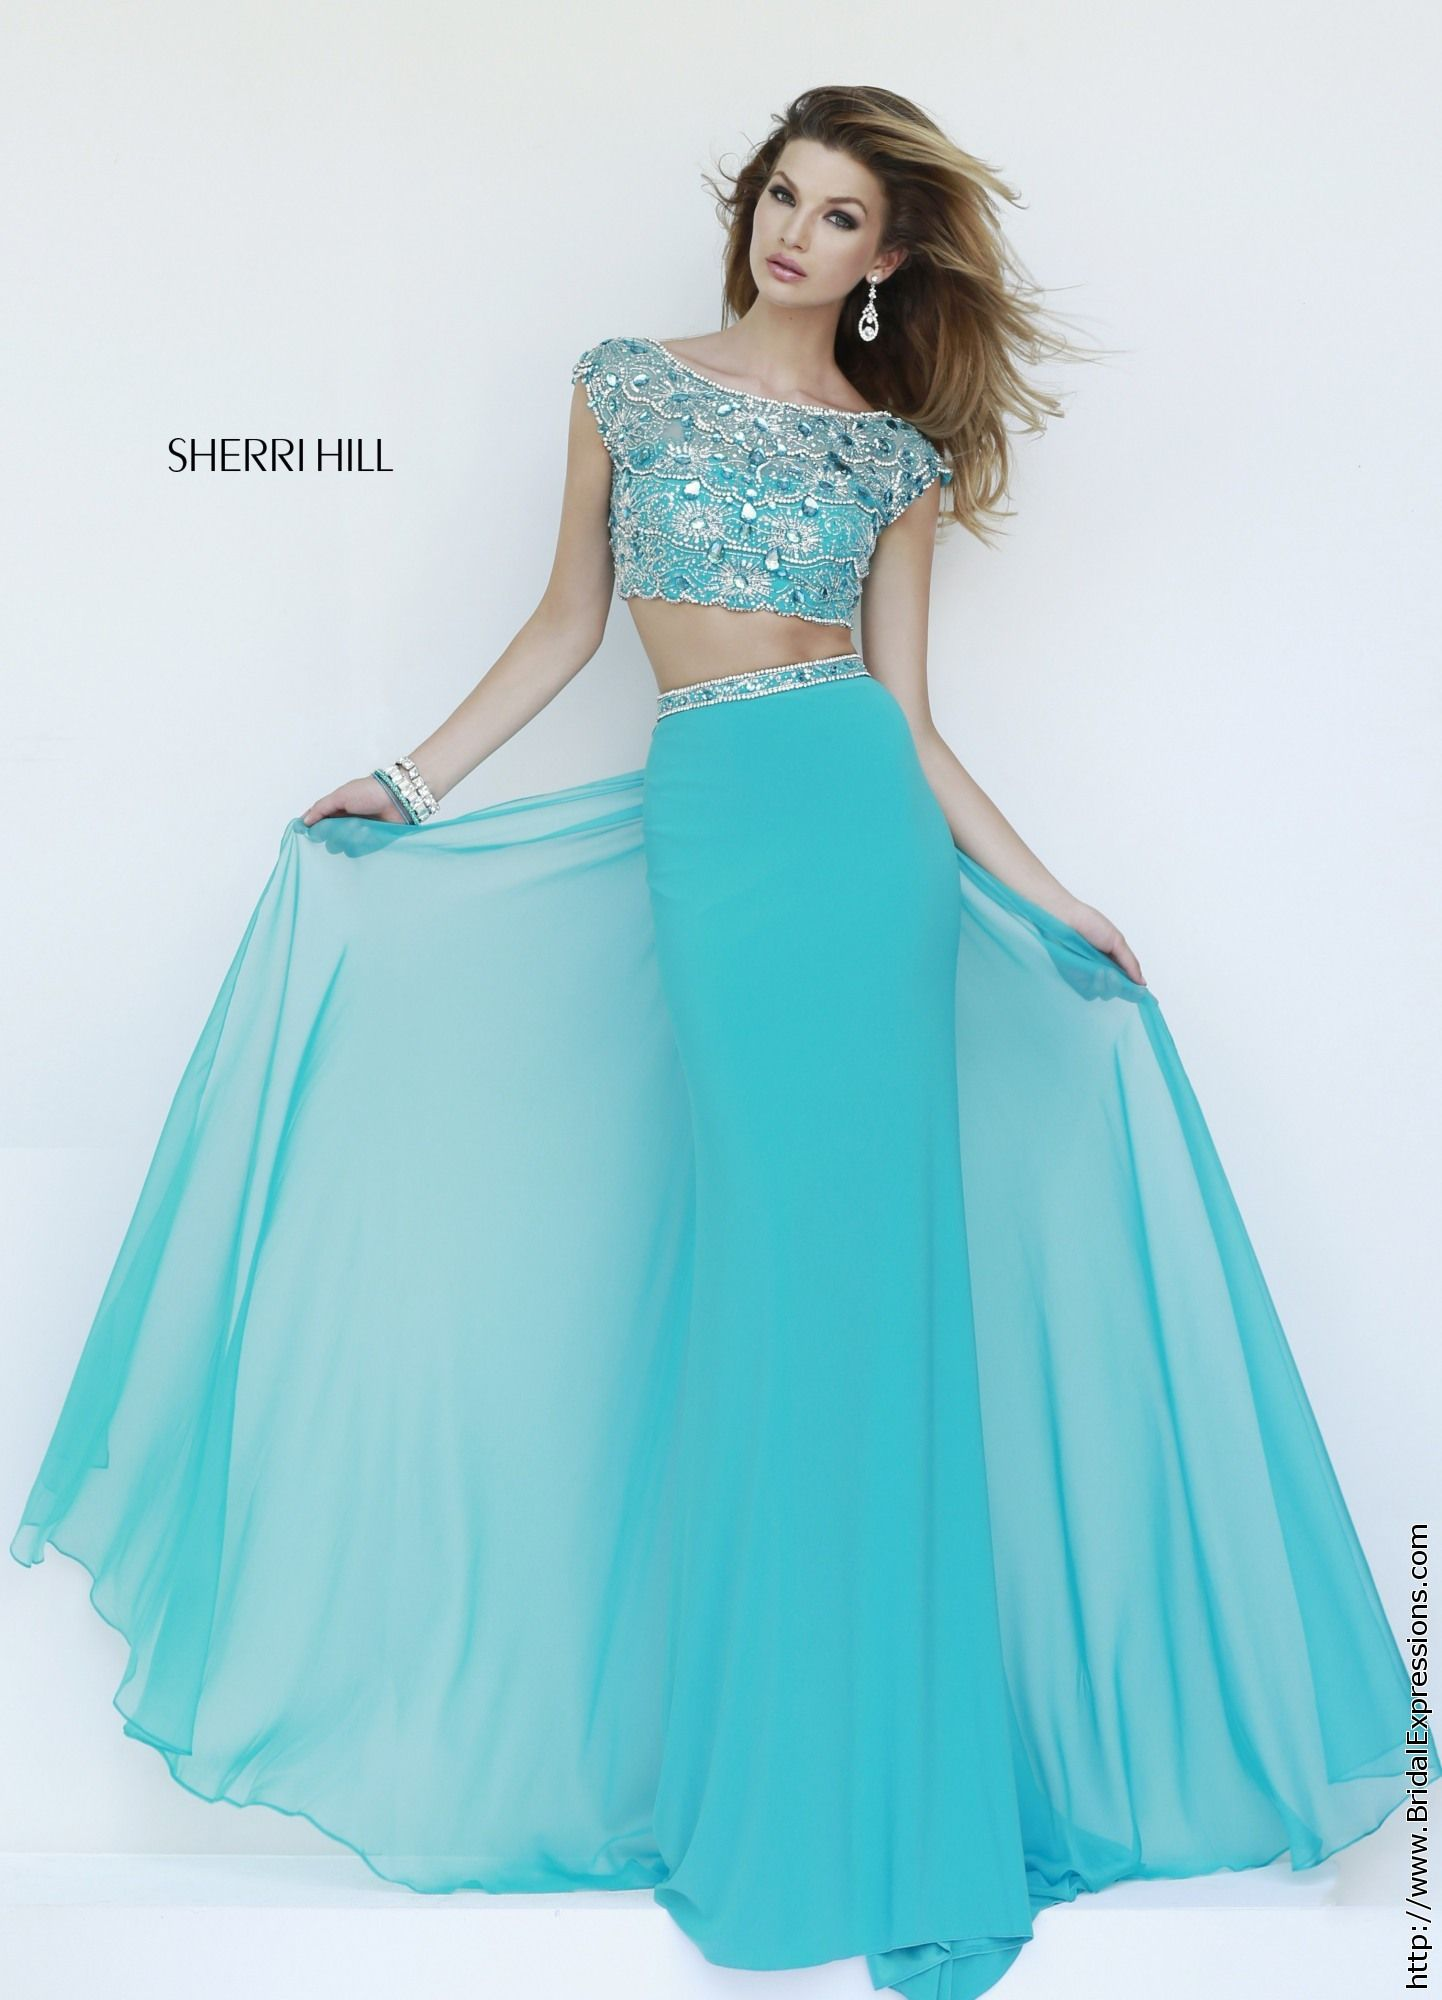 Sherri Hill 11197 Crop Top Jersey Prom Dress. Wear w/sari | M W ...